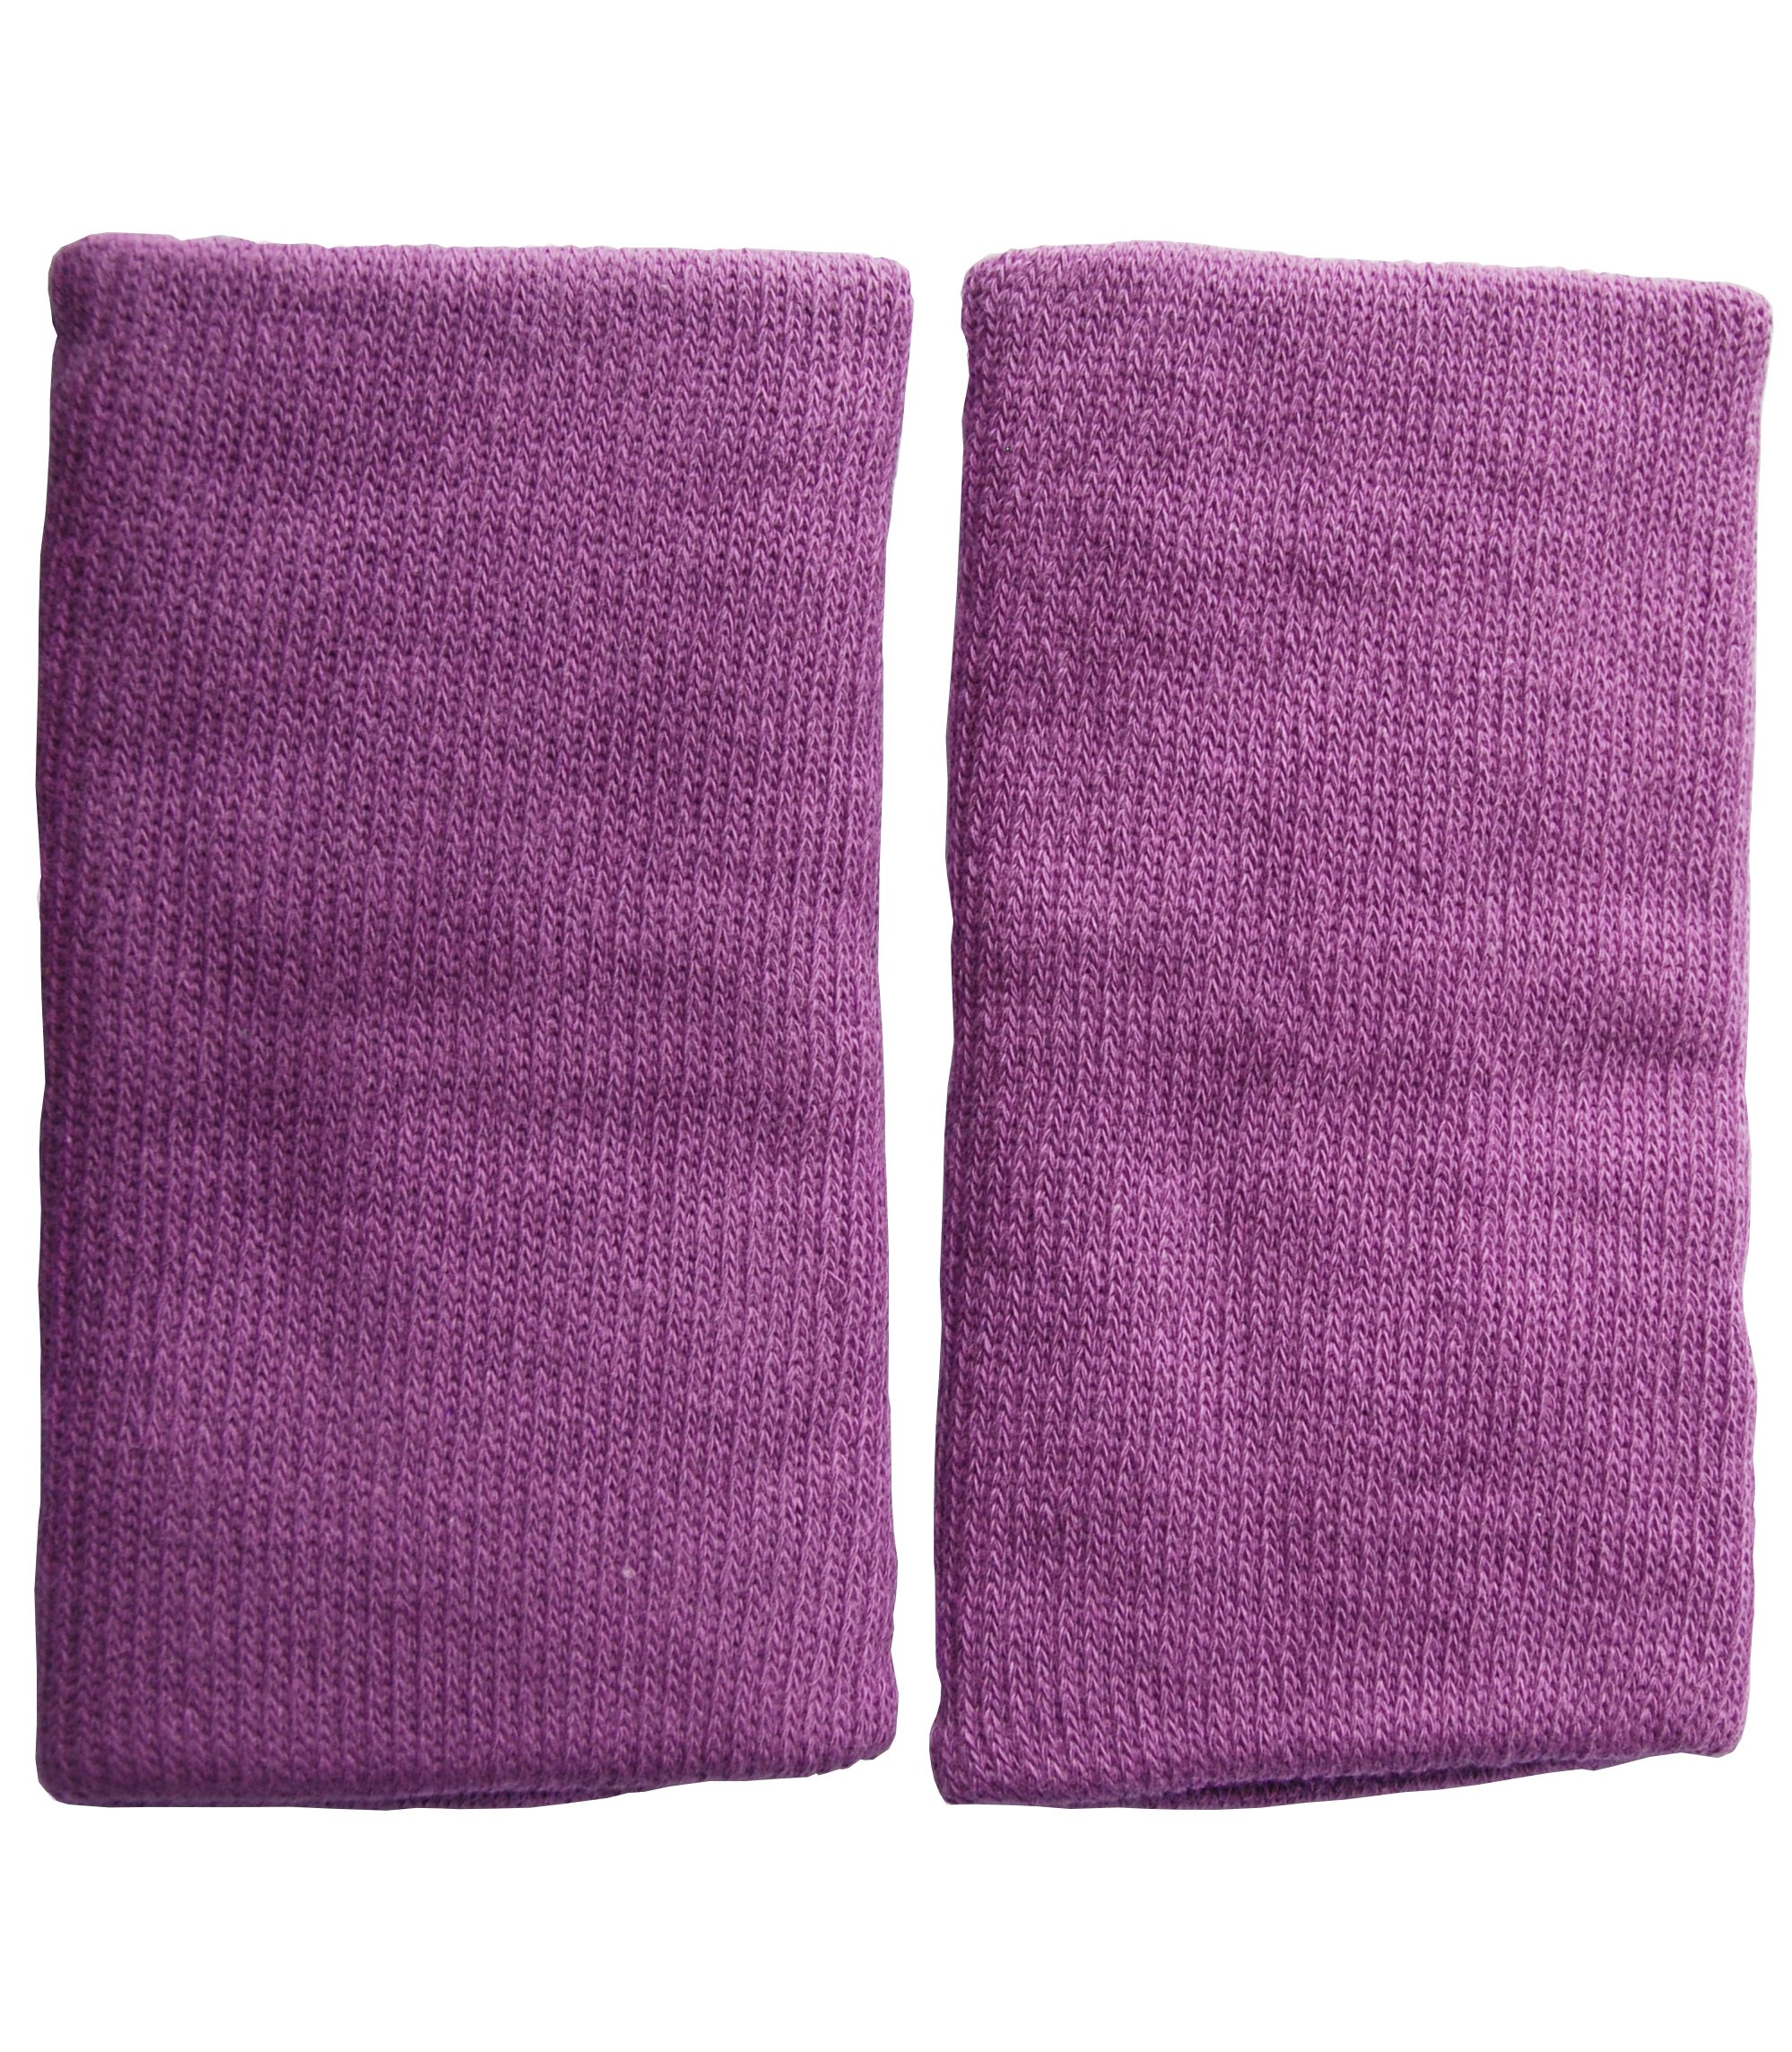 KneeBees Soft Protective Cotton Knee Pads/Knee Sleeves for Kids/Children Machine Washable Comfortable One Size Fits Most Perfect for Playing Running Exploring (Purple)